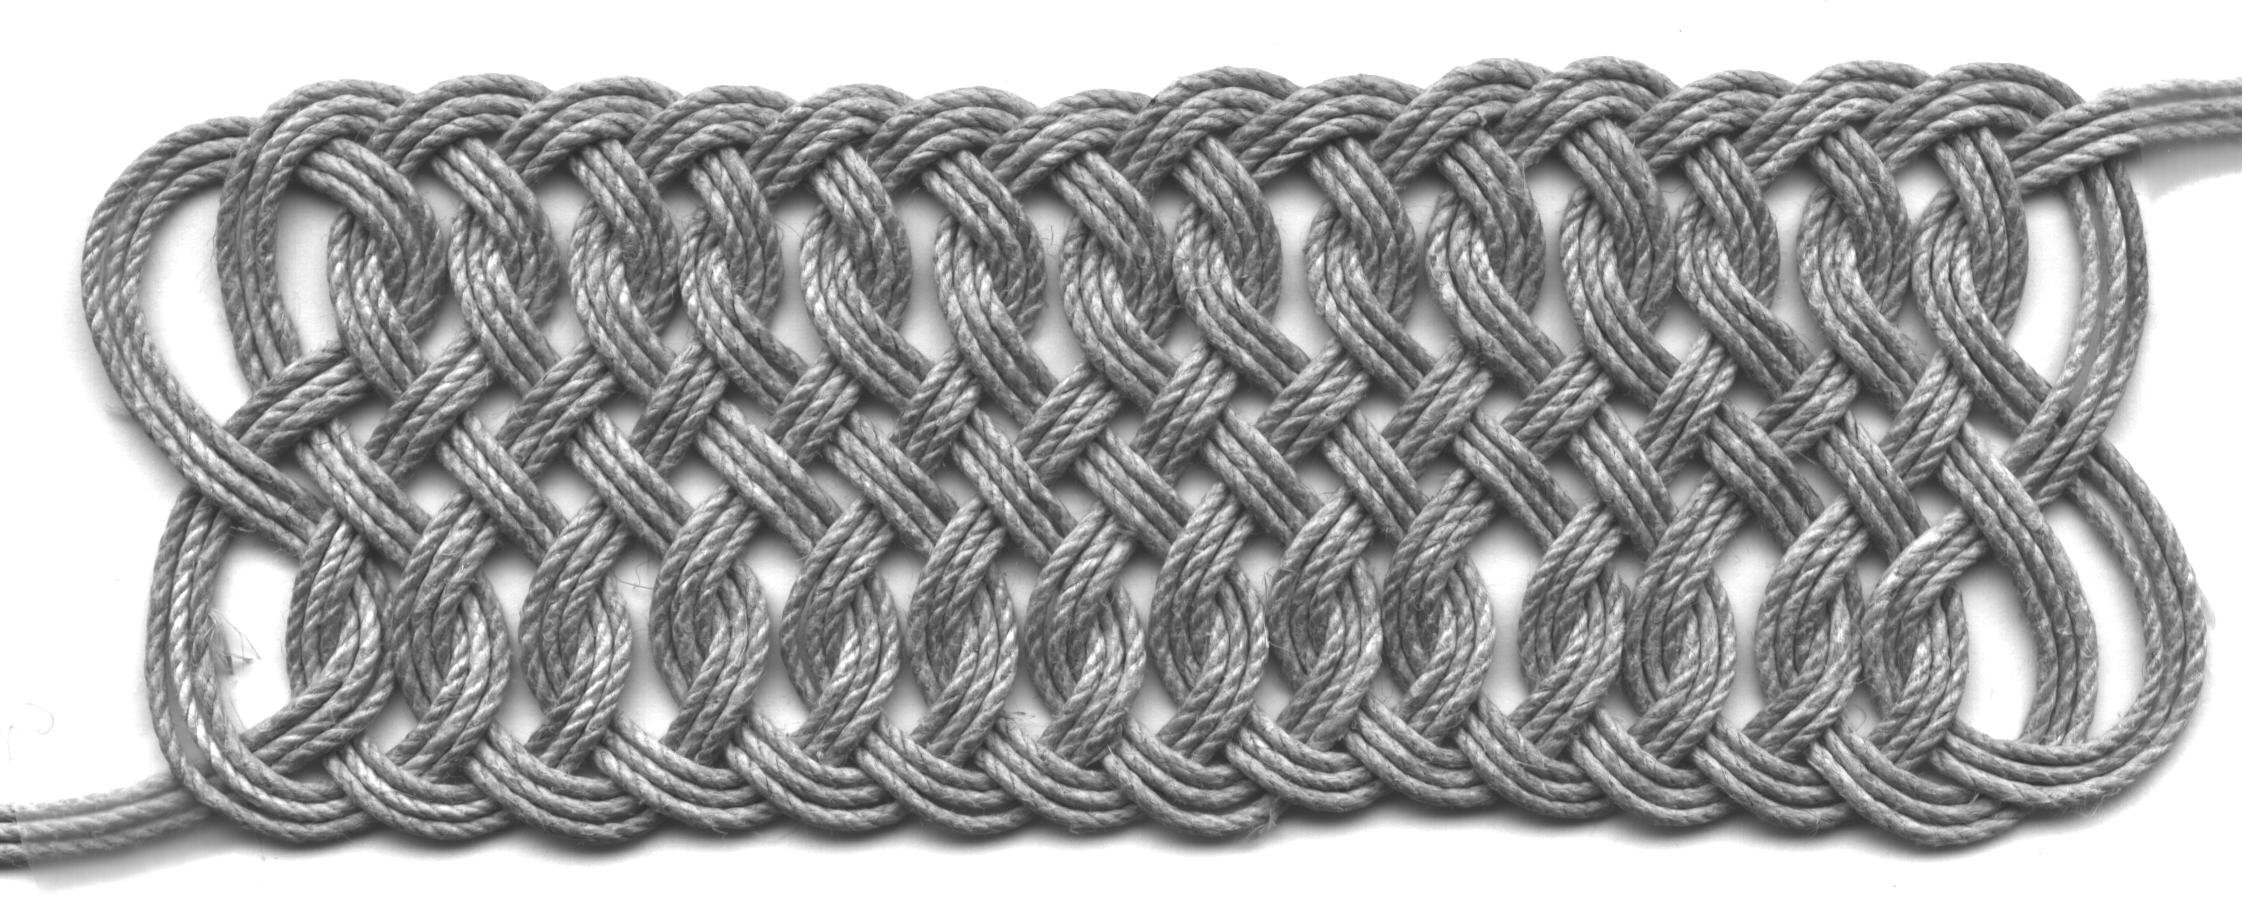 woven rope friezes